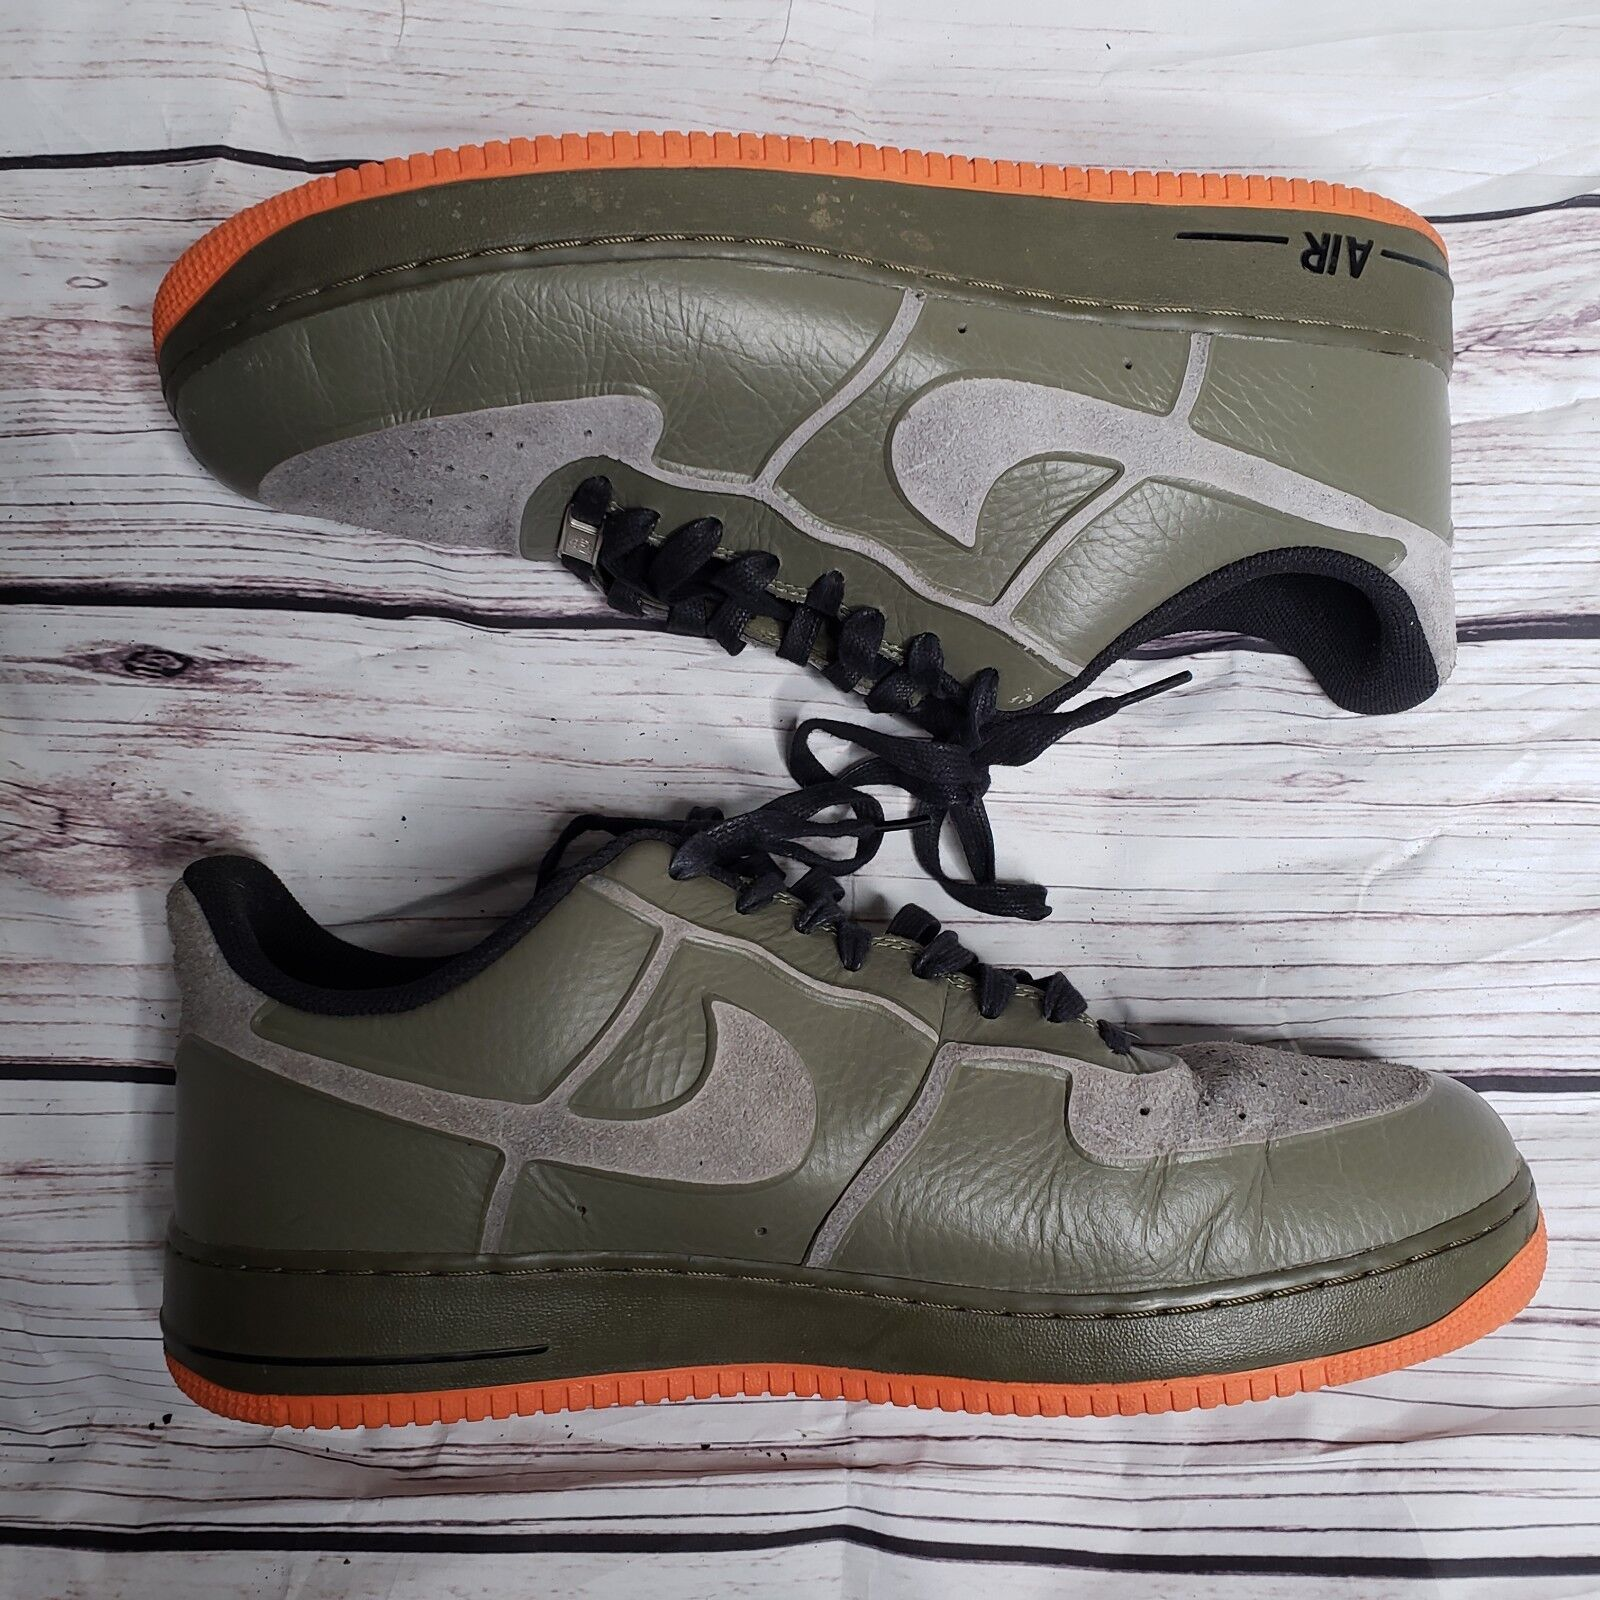 nike air force 1 faible prime skive  tce vt  skive  chaussures taille 14 moyen olive cc32d6